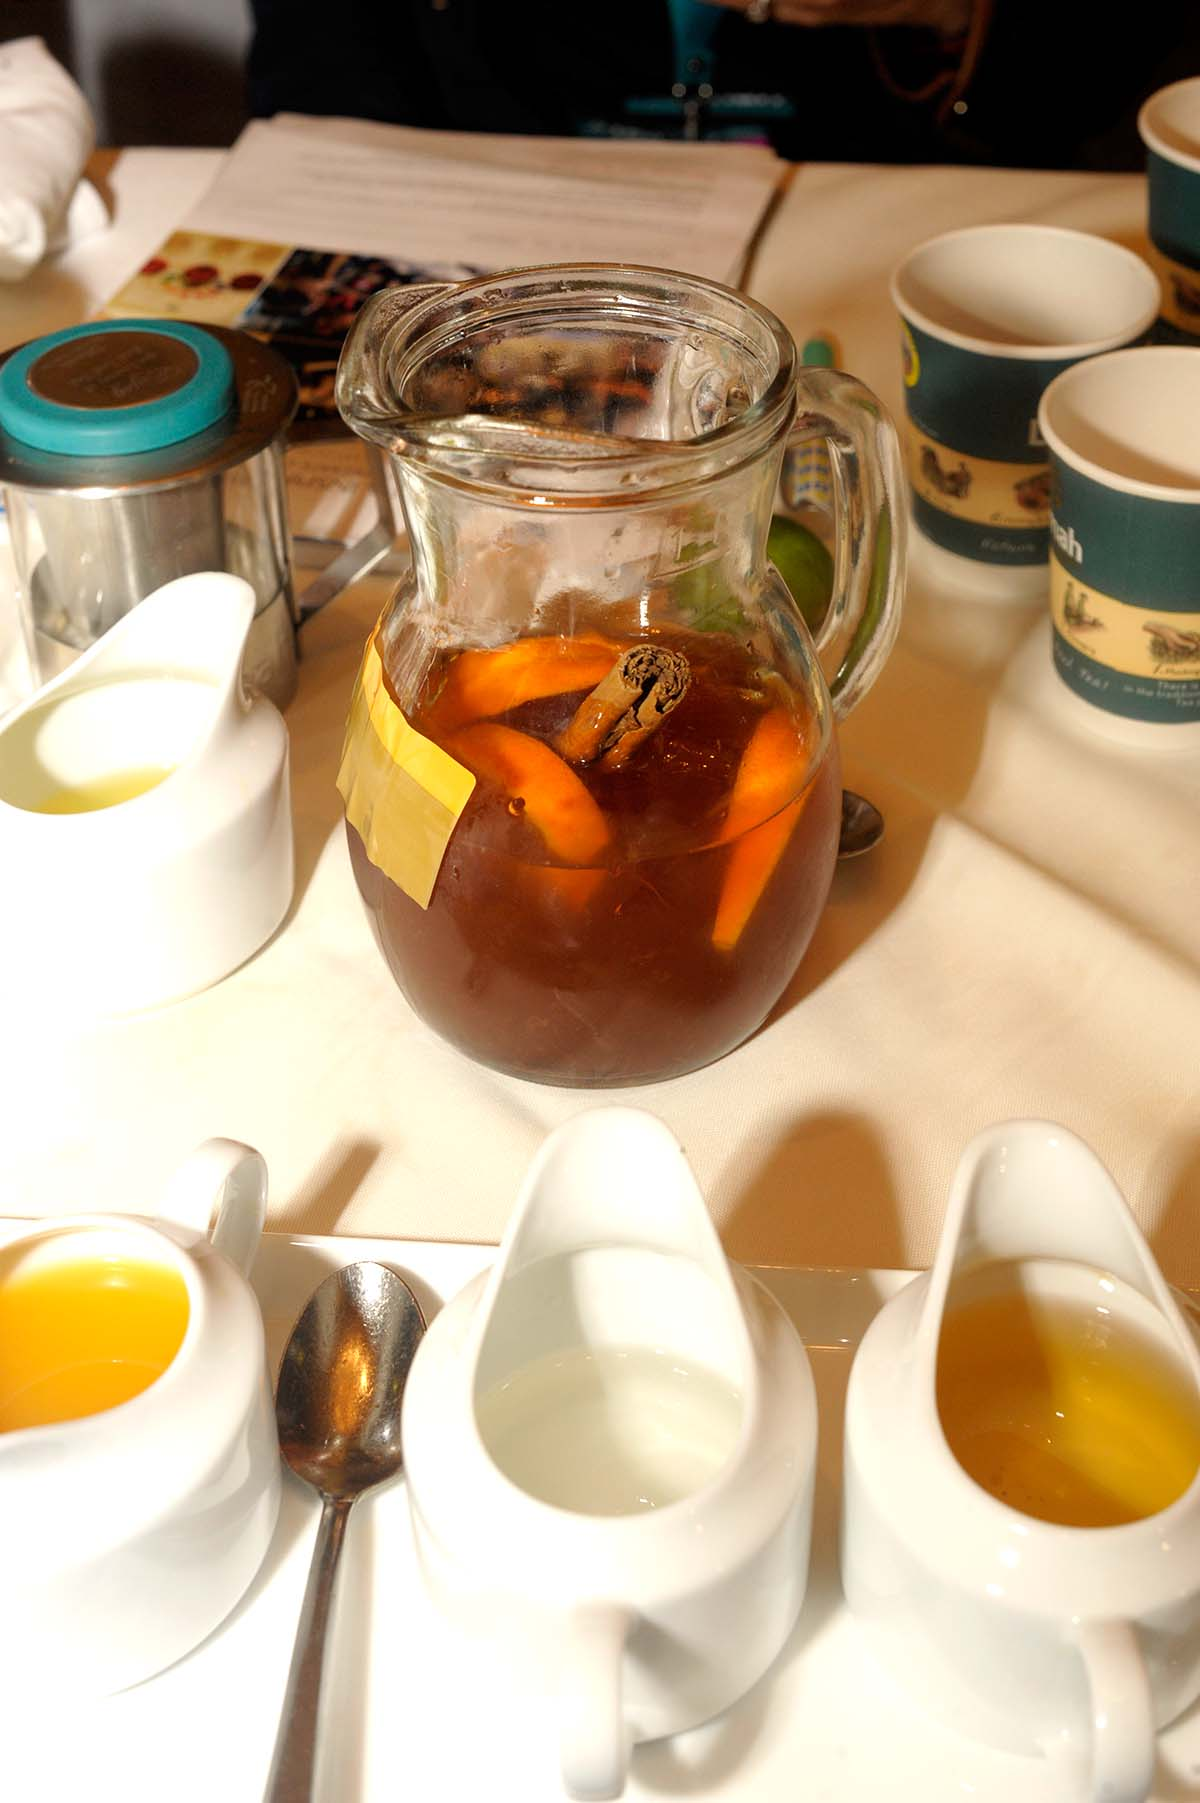 Iced tea pitcher made with tea bags